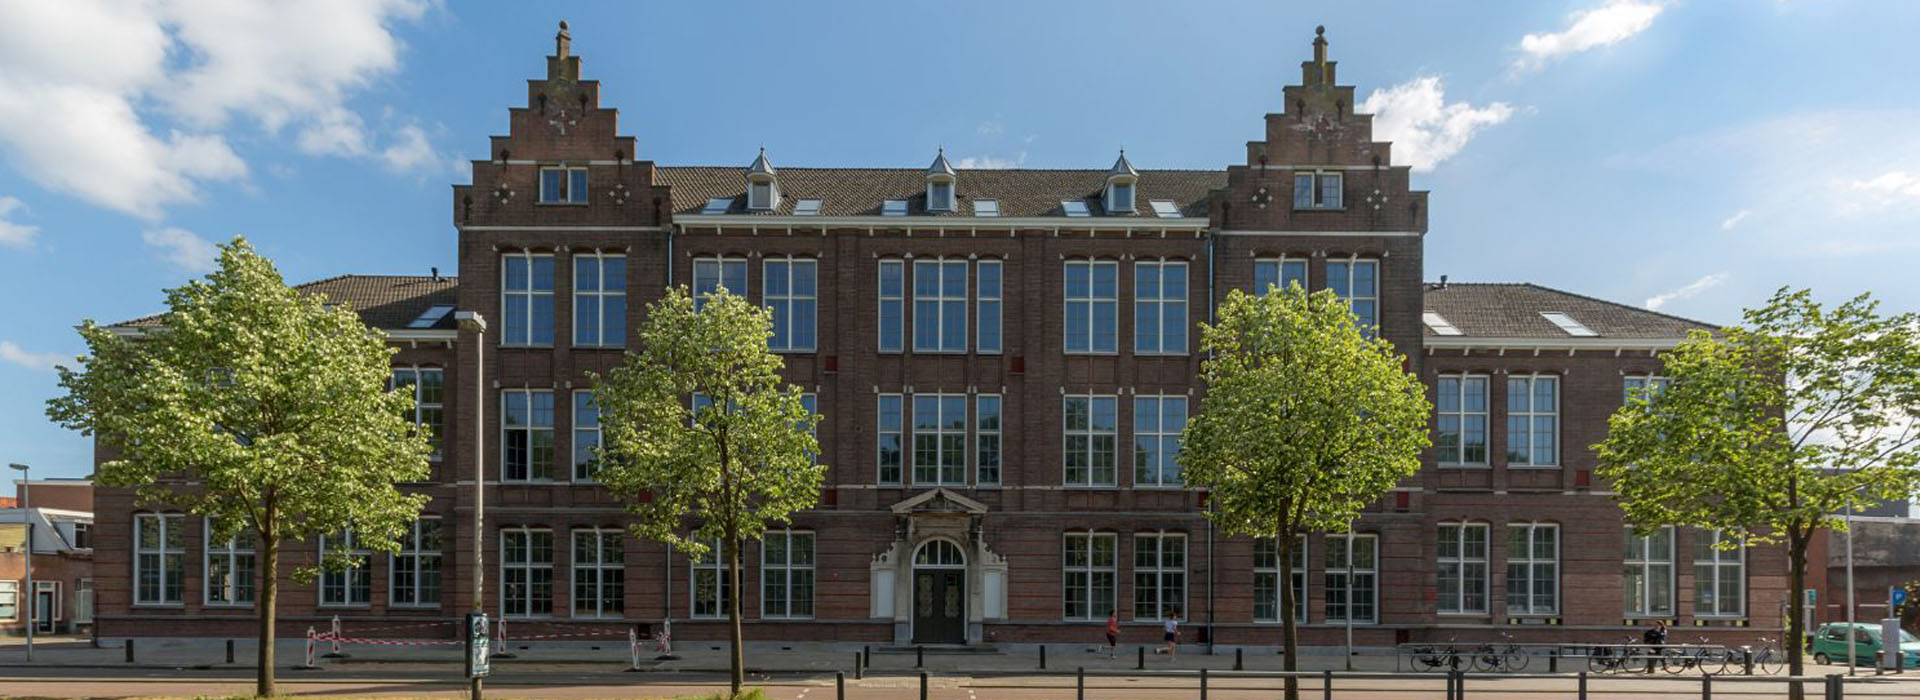 historical dutch building renovated to an apartment complex